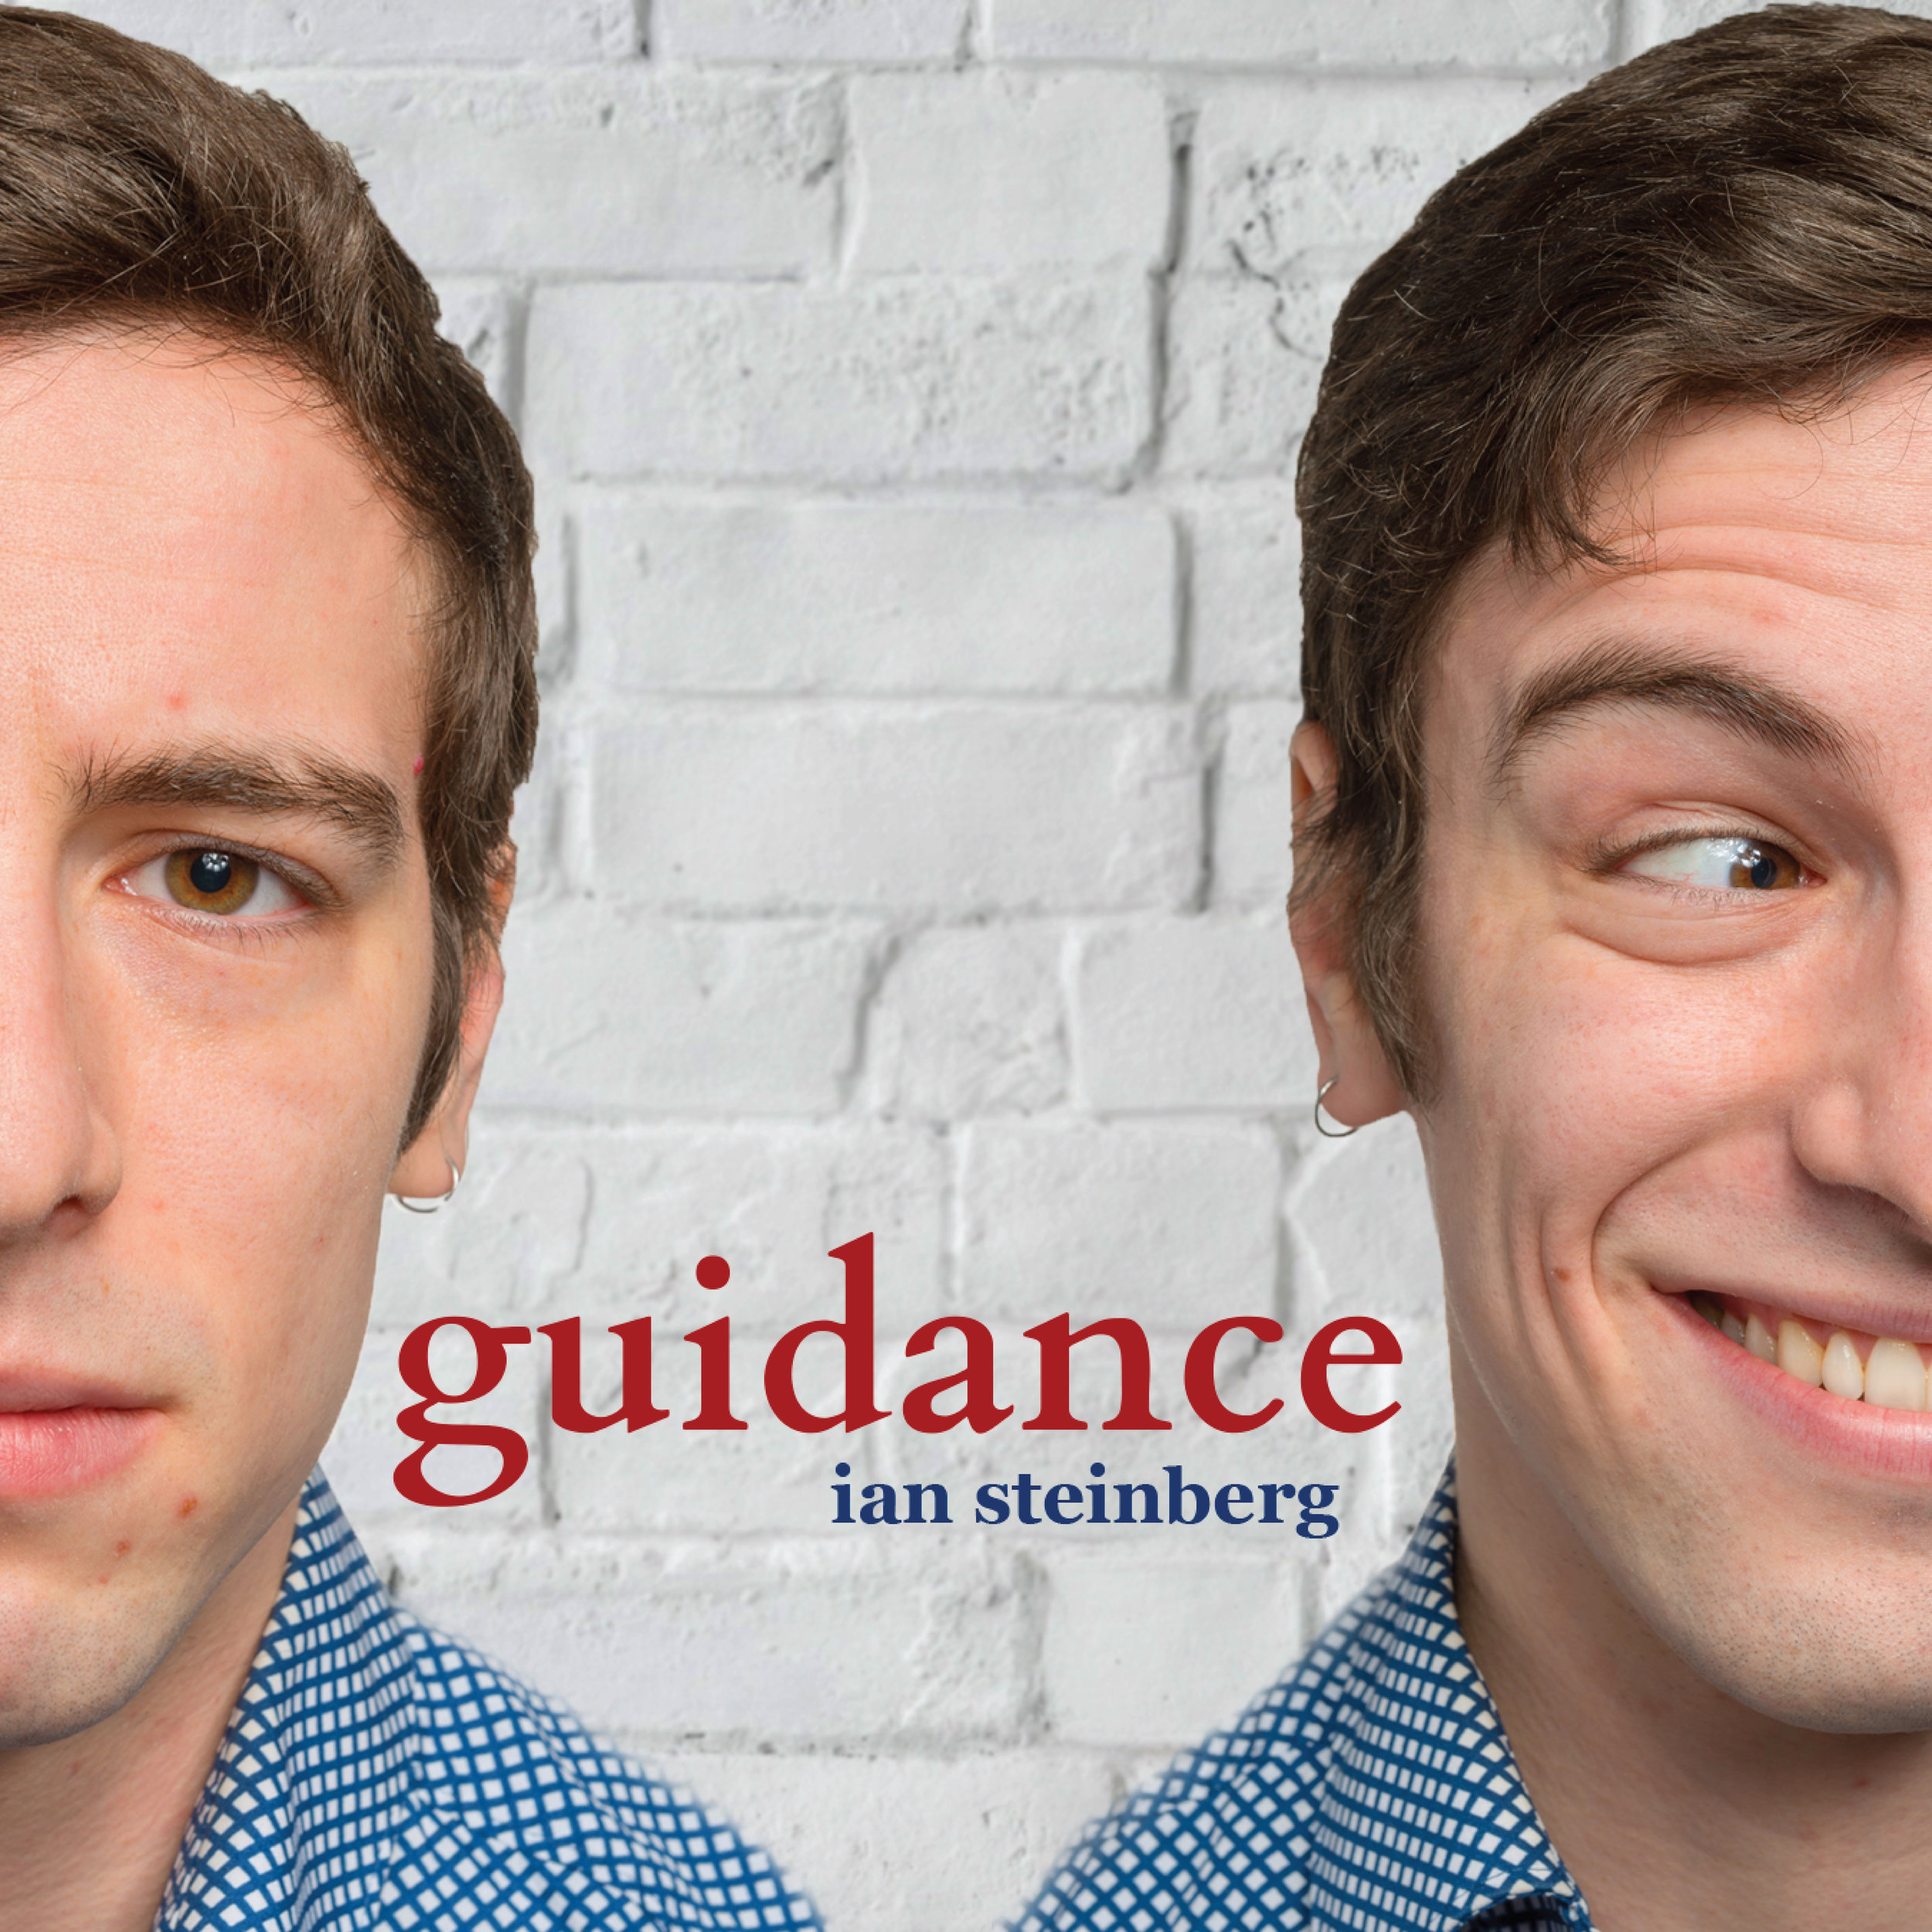 Guidance out now! -